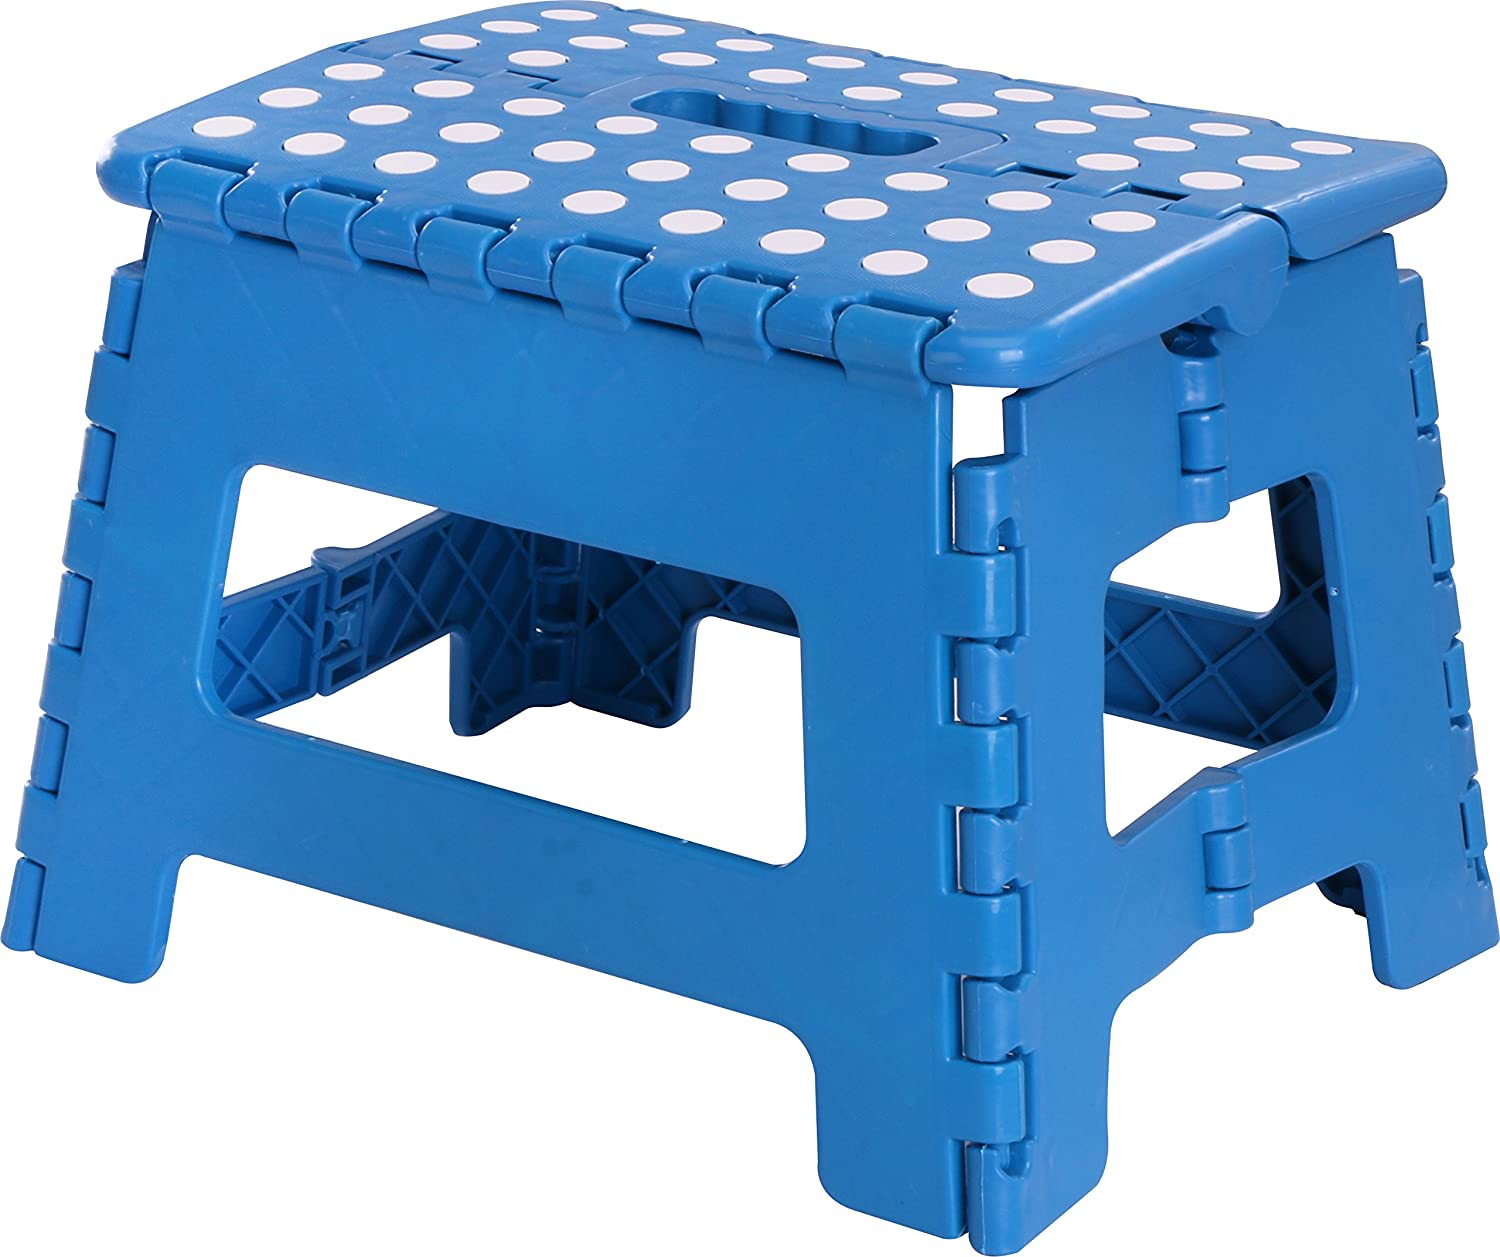 a blue step stool with white polka dots on the top surface; all on a white background